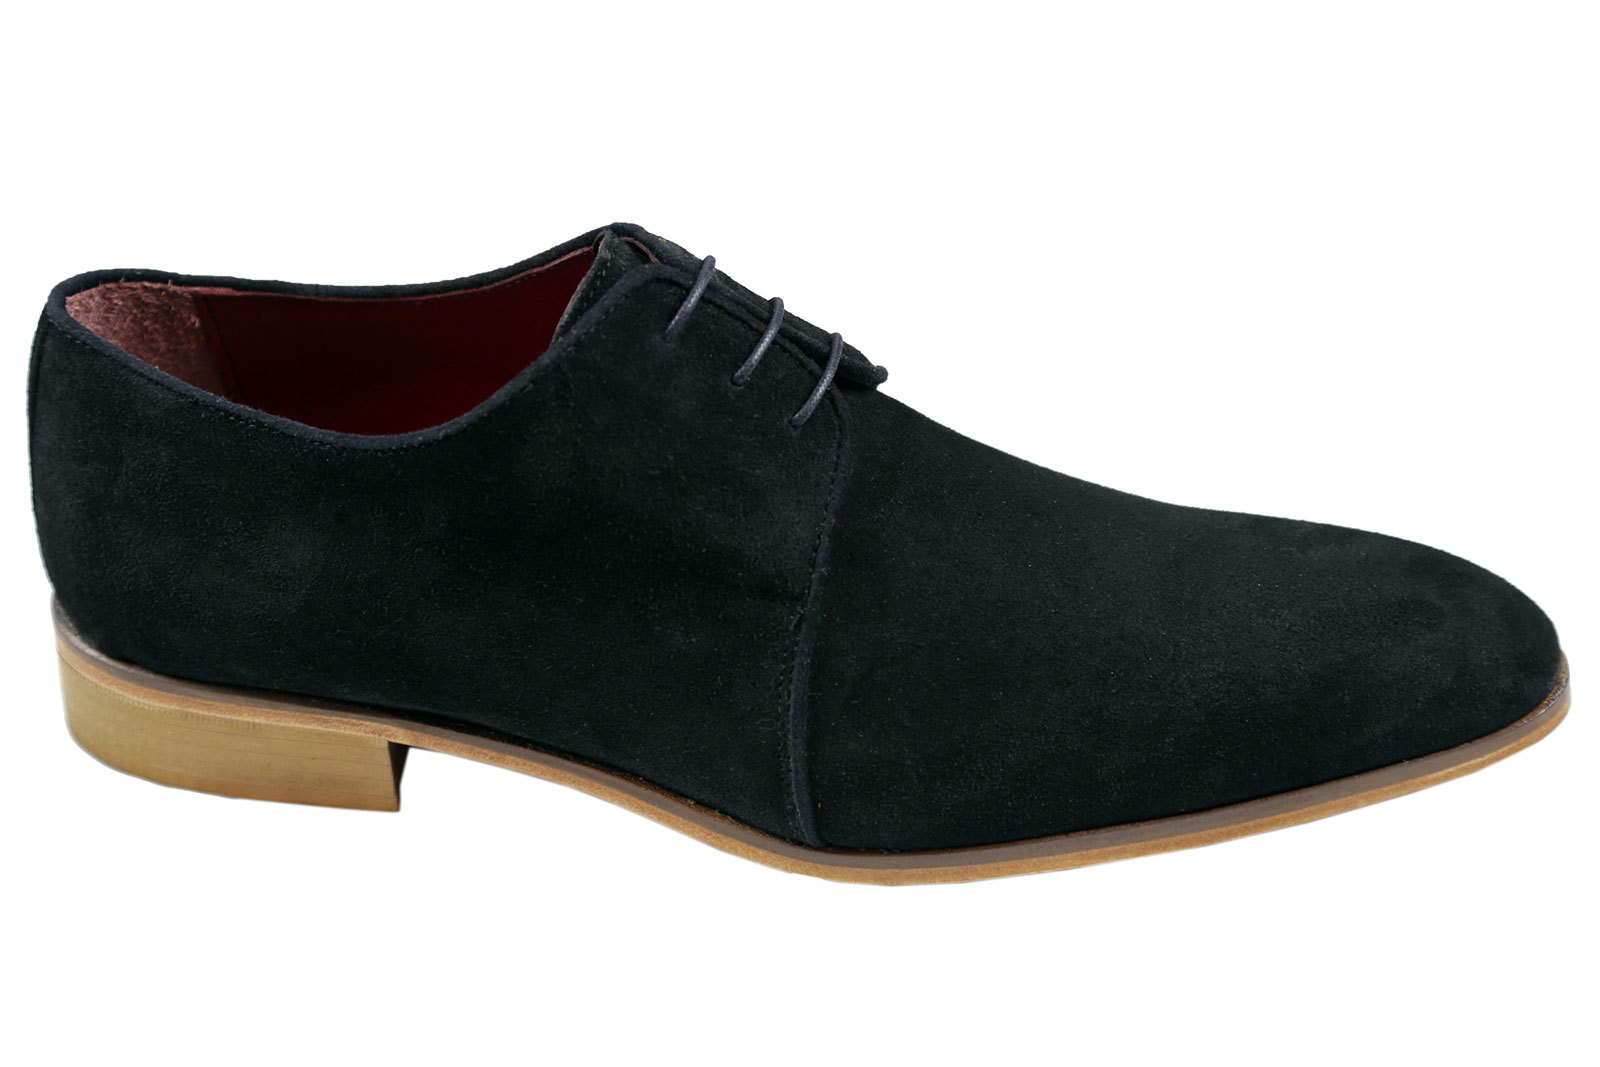 Black Suede Dress Shoes Sale: Save Up to 75% Off! Shop tokosepatu.ga's huge selection of Black Suede Dress Shoes - Over styles available. FREE Shipping & Exchanges, and a .